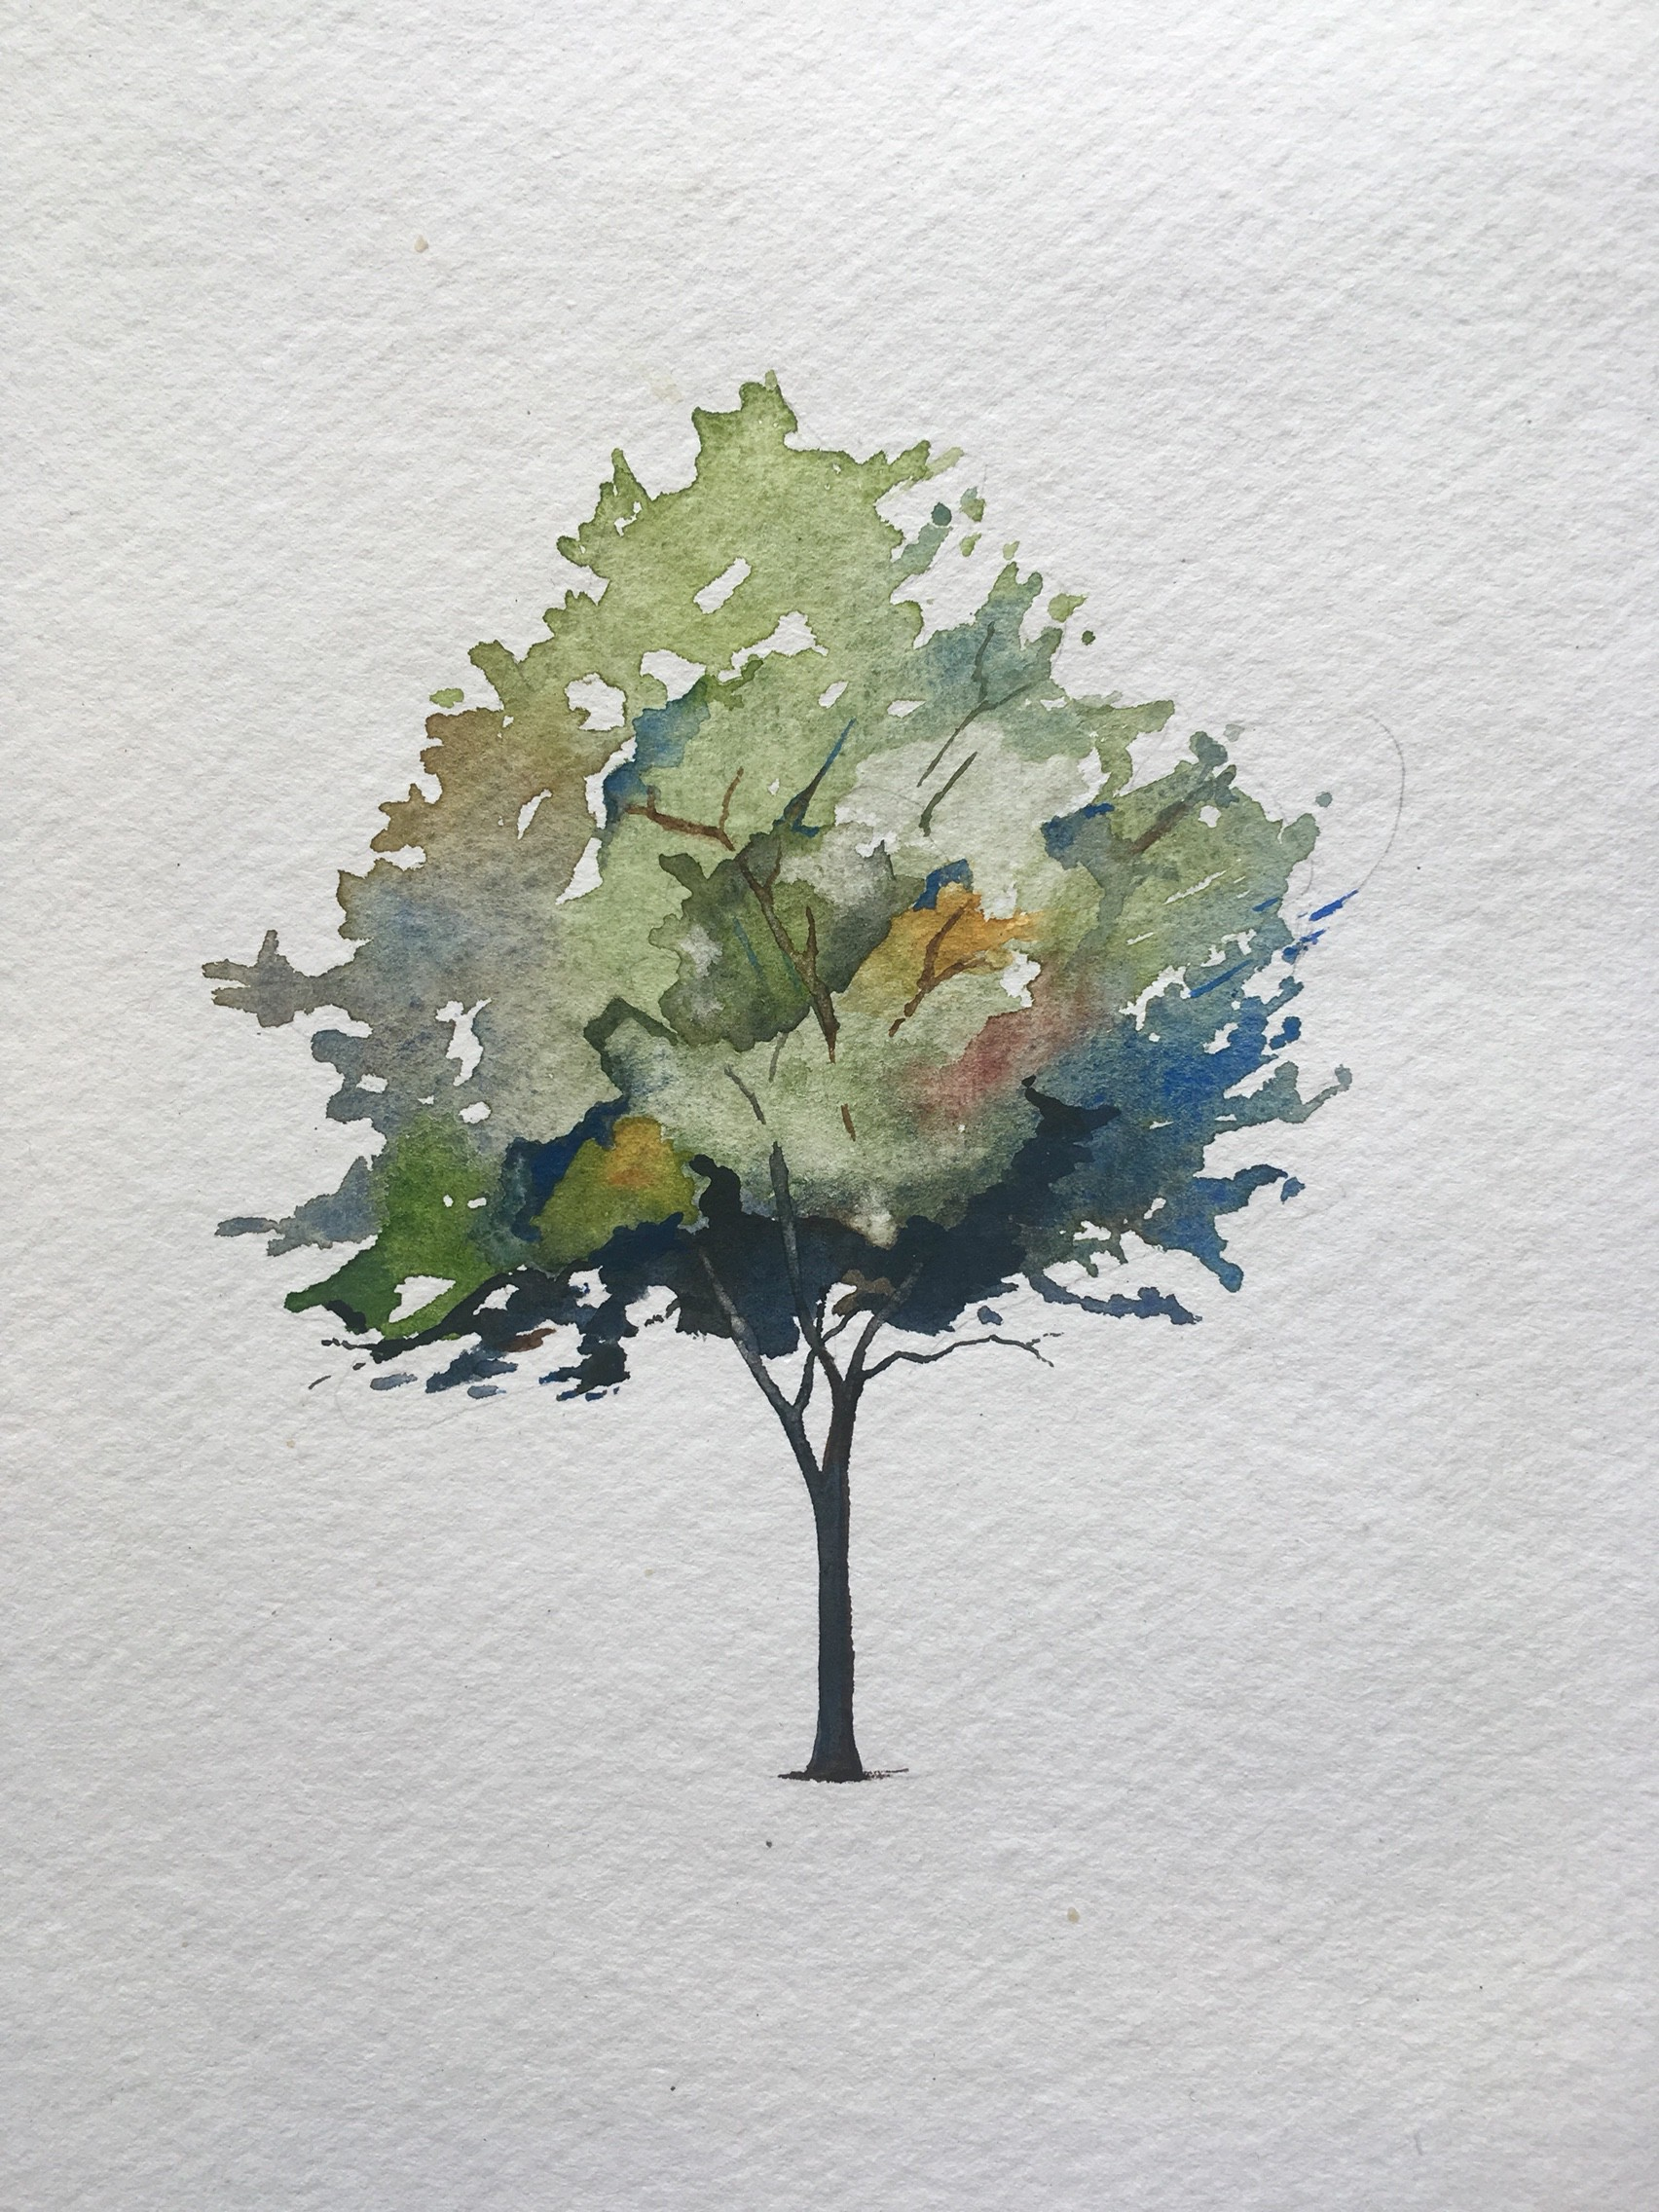 How To Paint A Tree In Watercolors By Christopher P Jones The Startup Medium